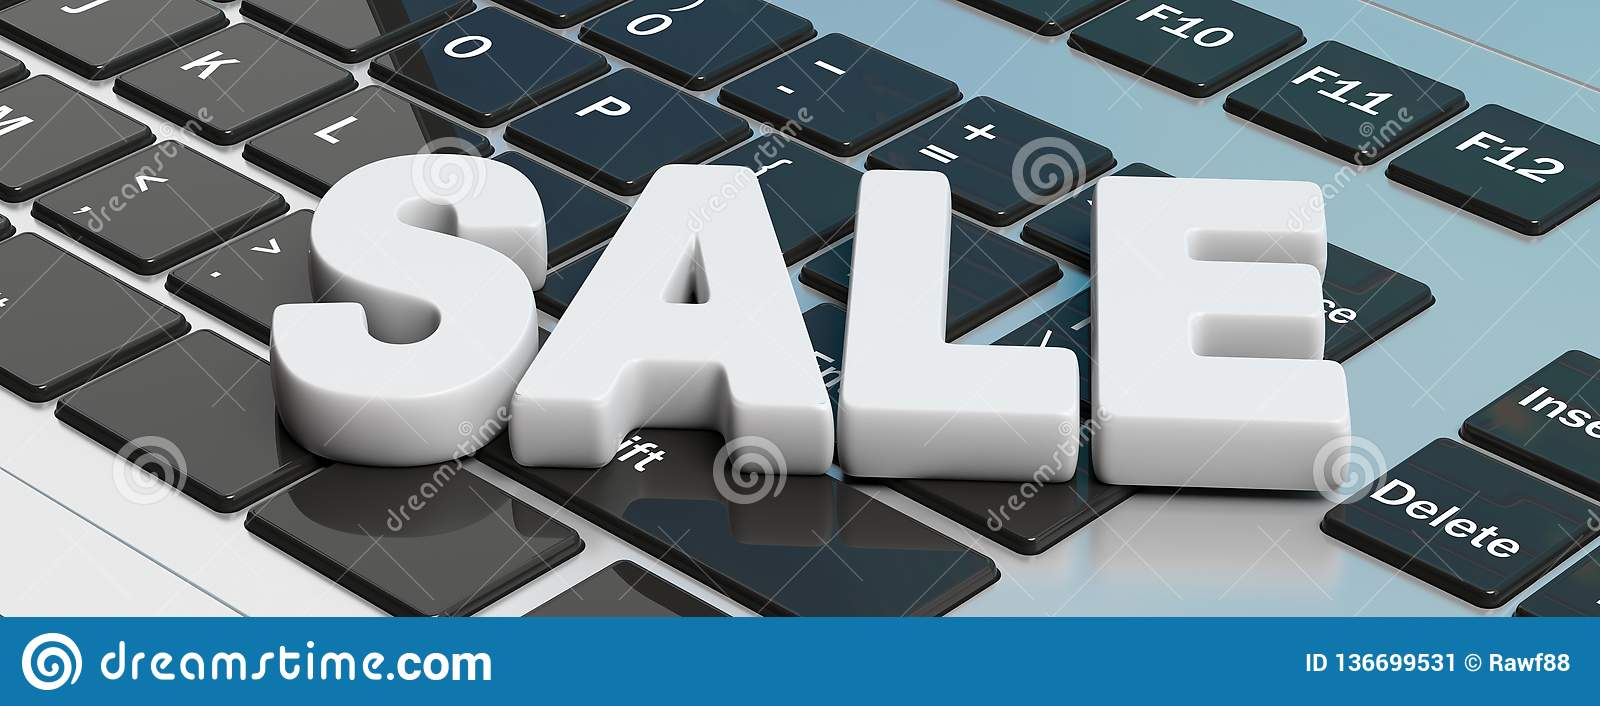 Text Sale Letters On A Computer Laptop Keyboard Banner 3d Illustration Stock Illustration Illustration Of Design Electronic 136699531